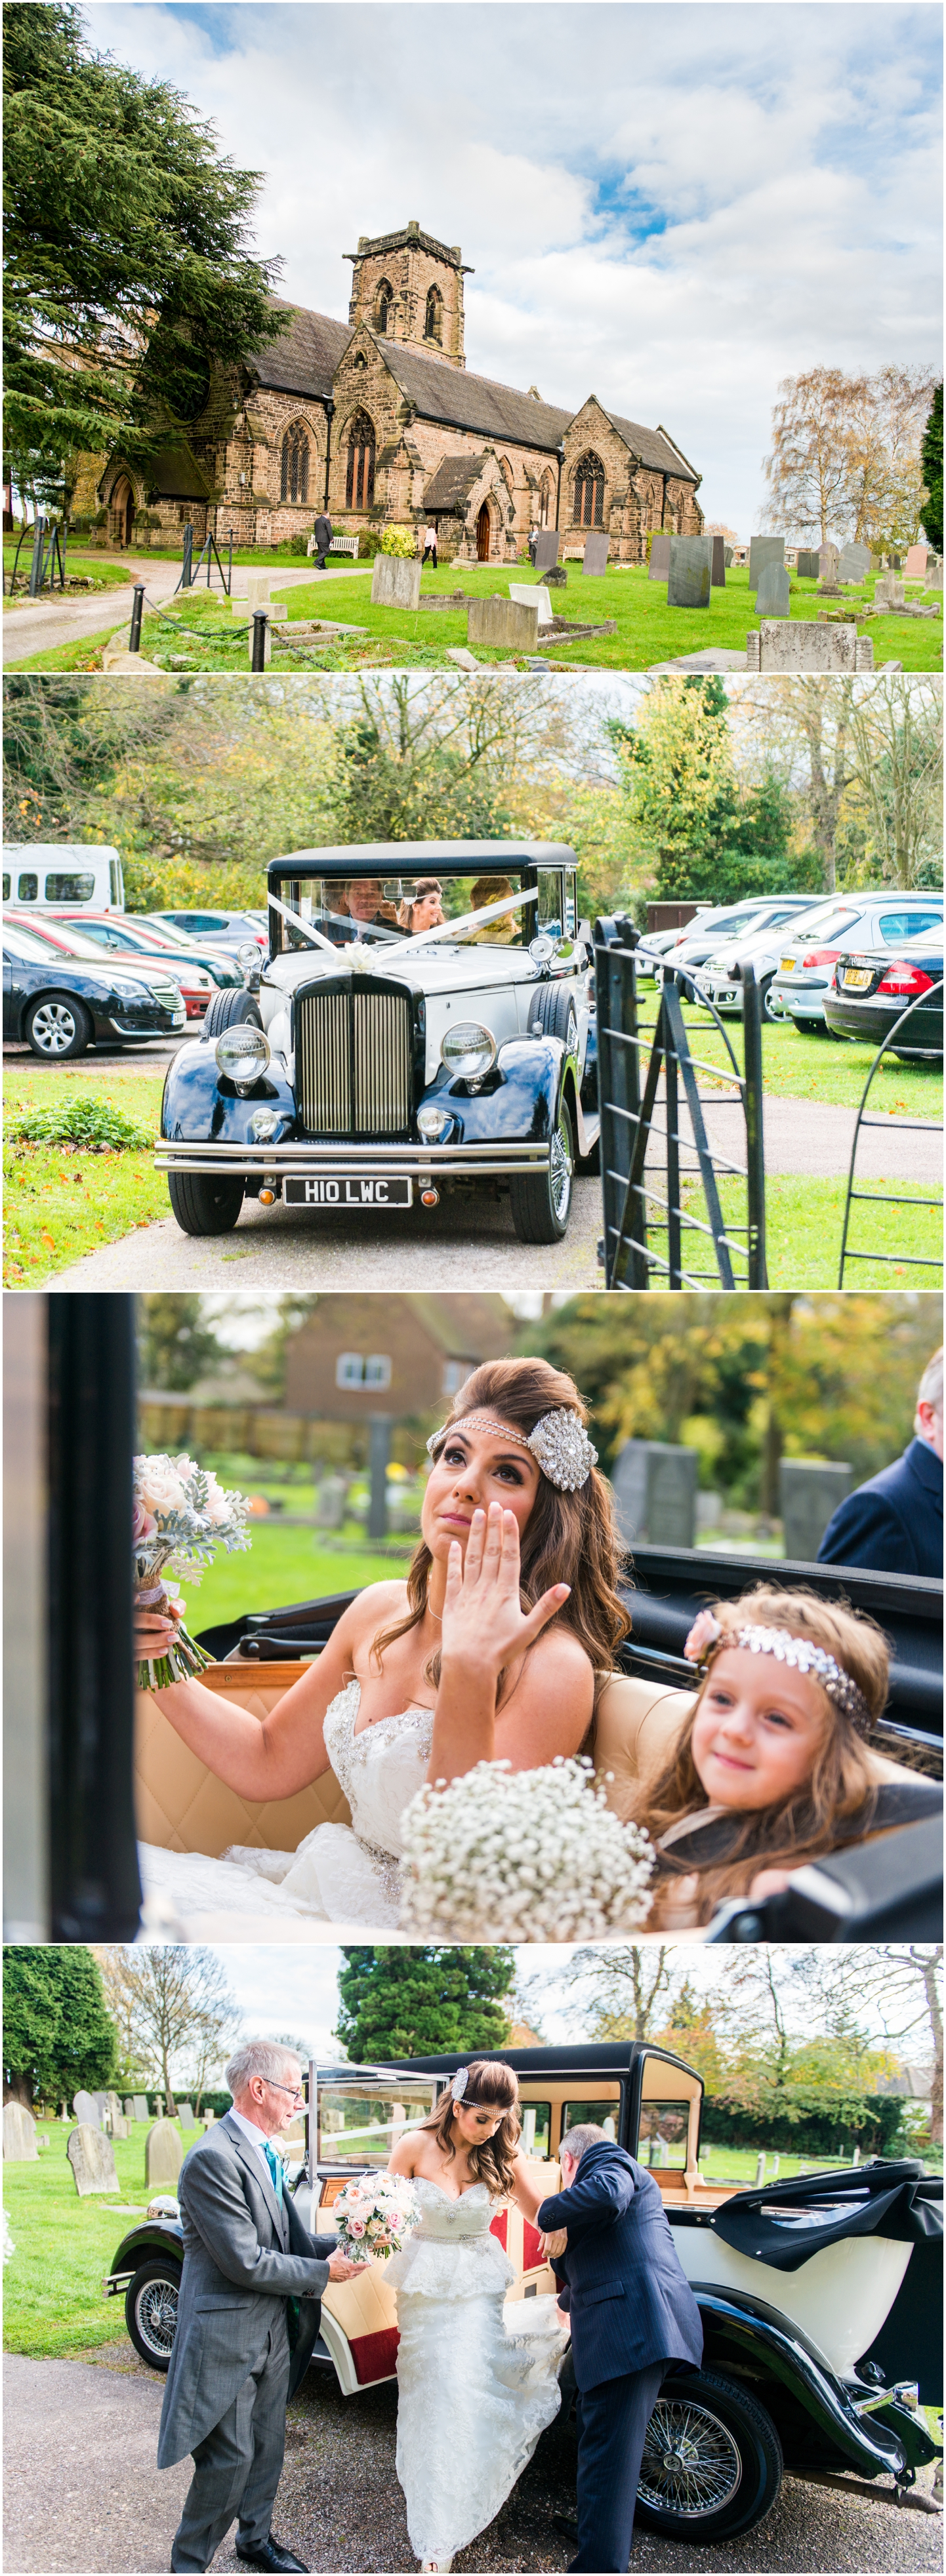 Moxhull Hall Wedding Photography, Lisa Carpenter Photography, photos, Sutton Coldfield, West Midlands, Birmingham,